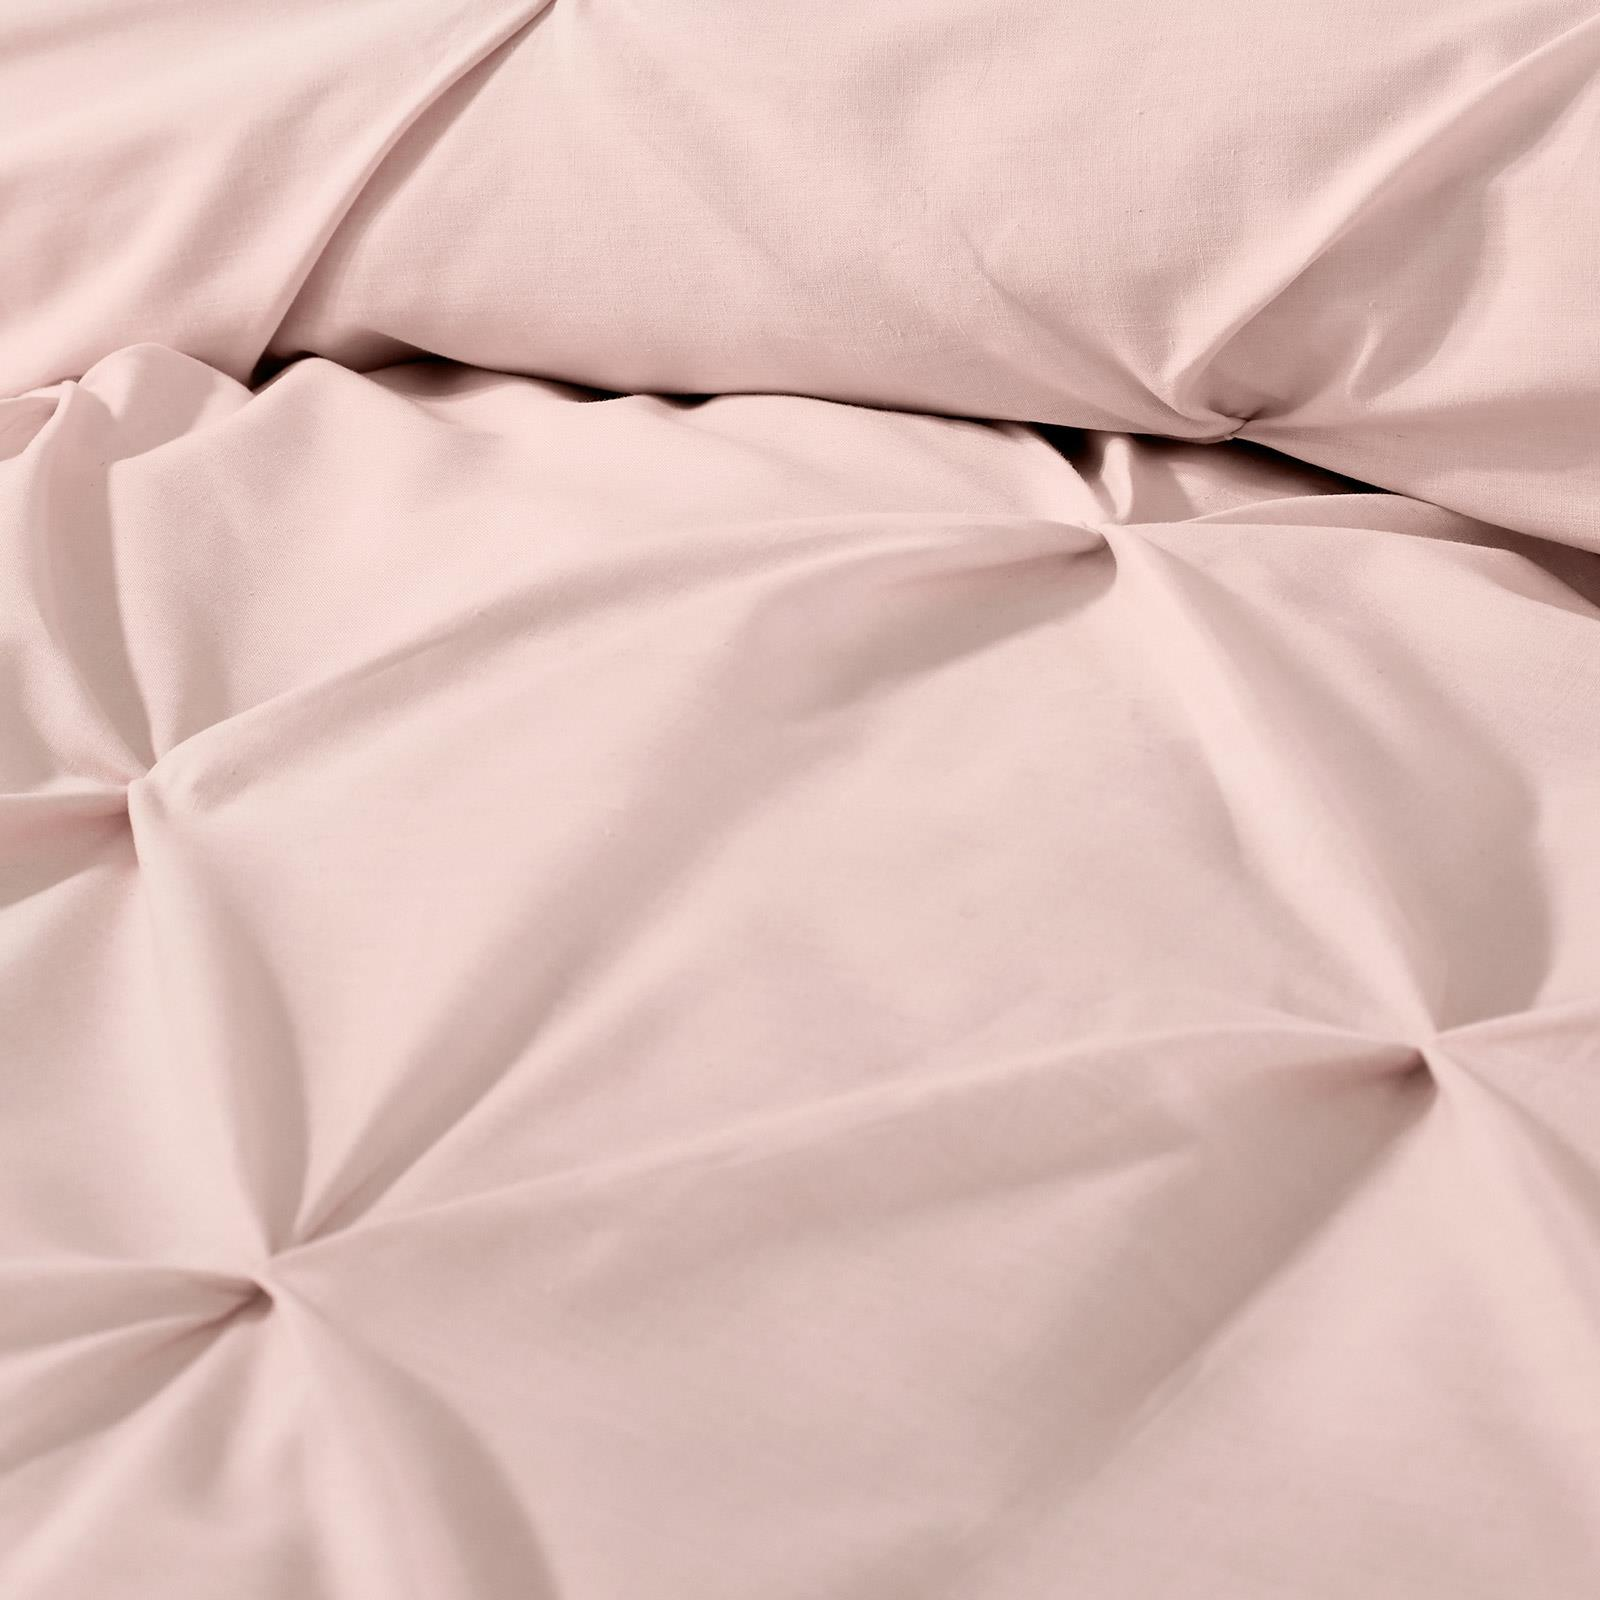 Blush-Duvet-Covers-Ruched-Pin-Tuck-Stitched-Plain-Pink-Quilt-Cover-Bedding-Sets thumbnail 16